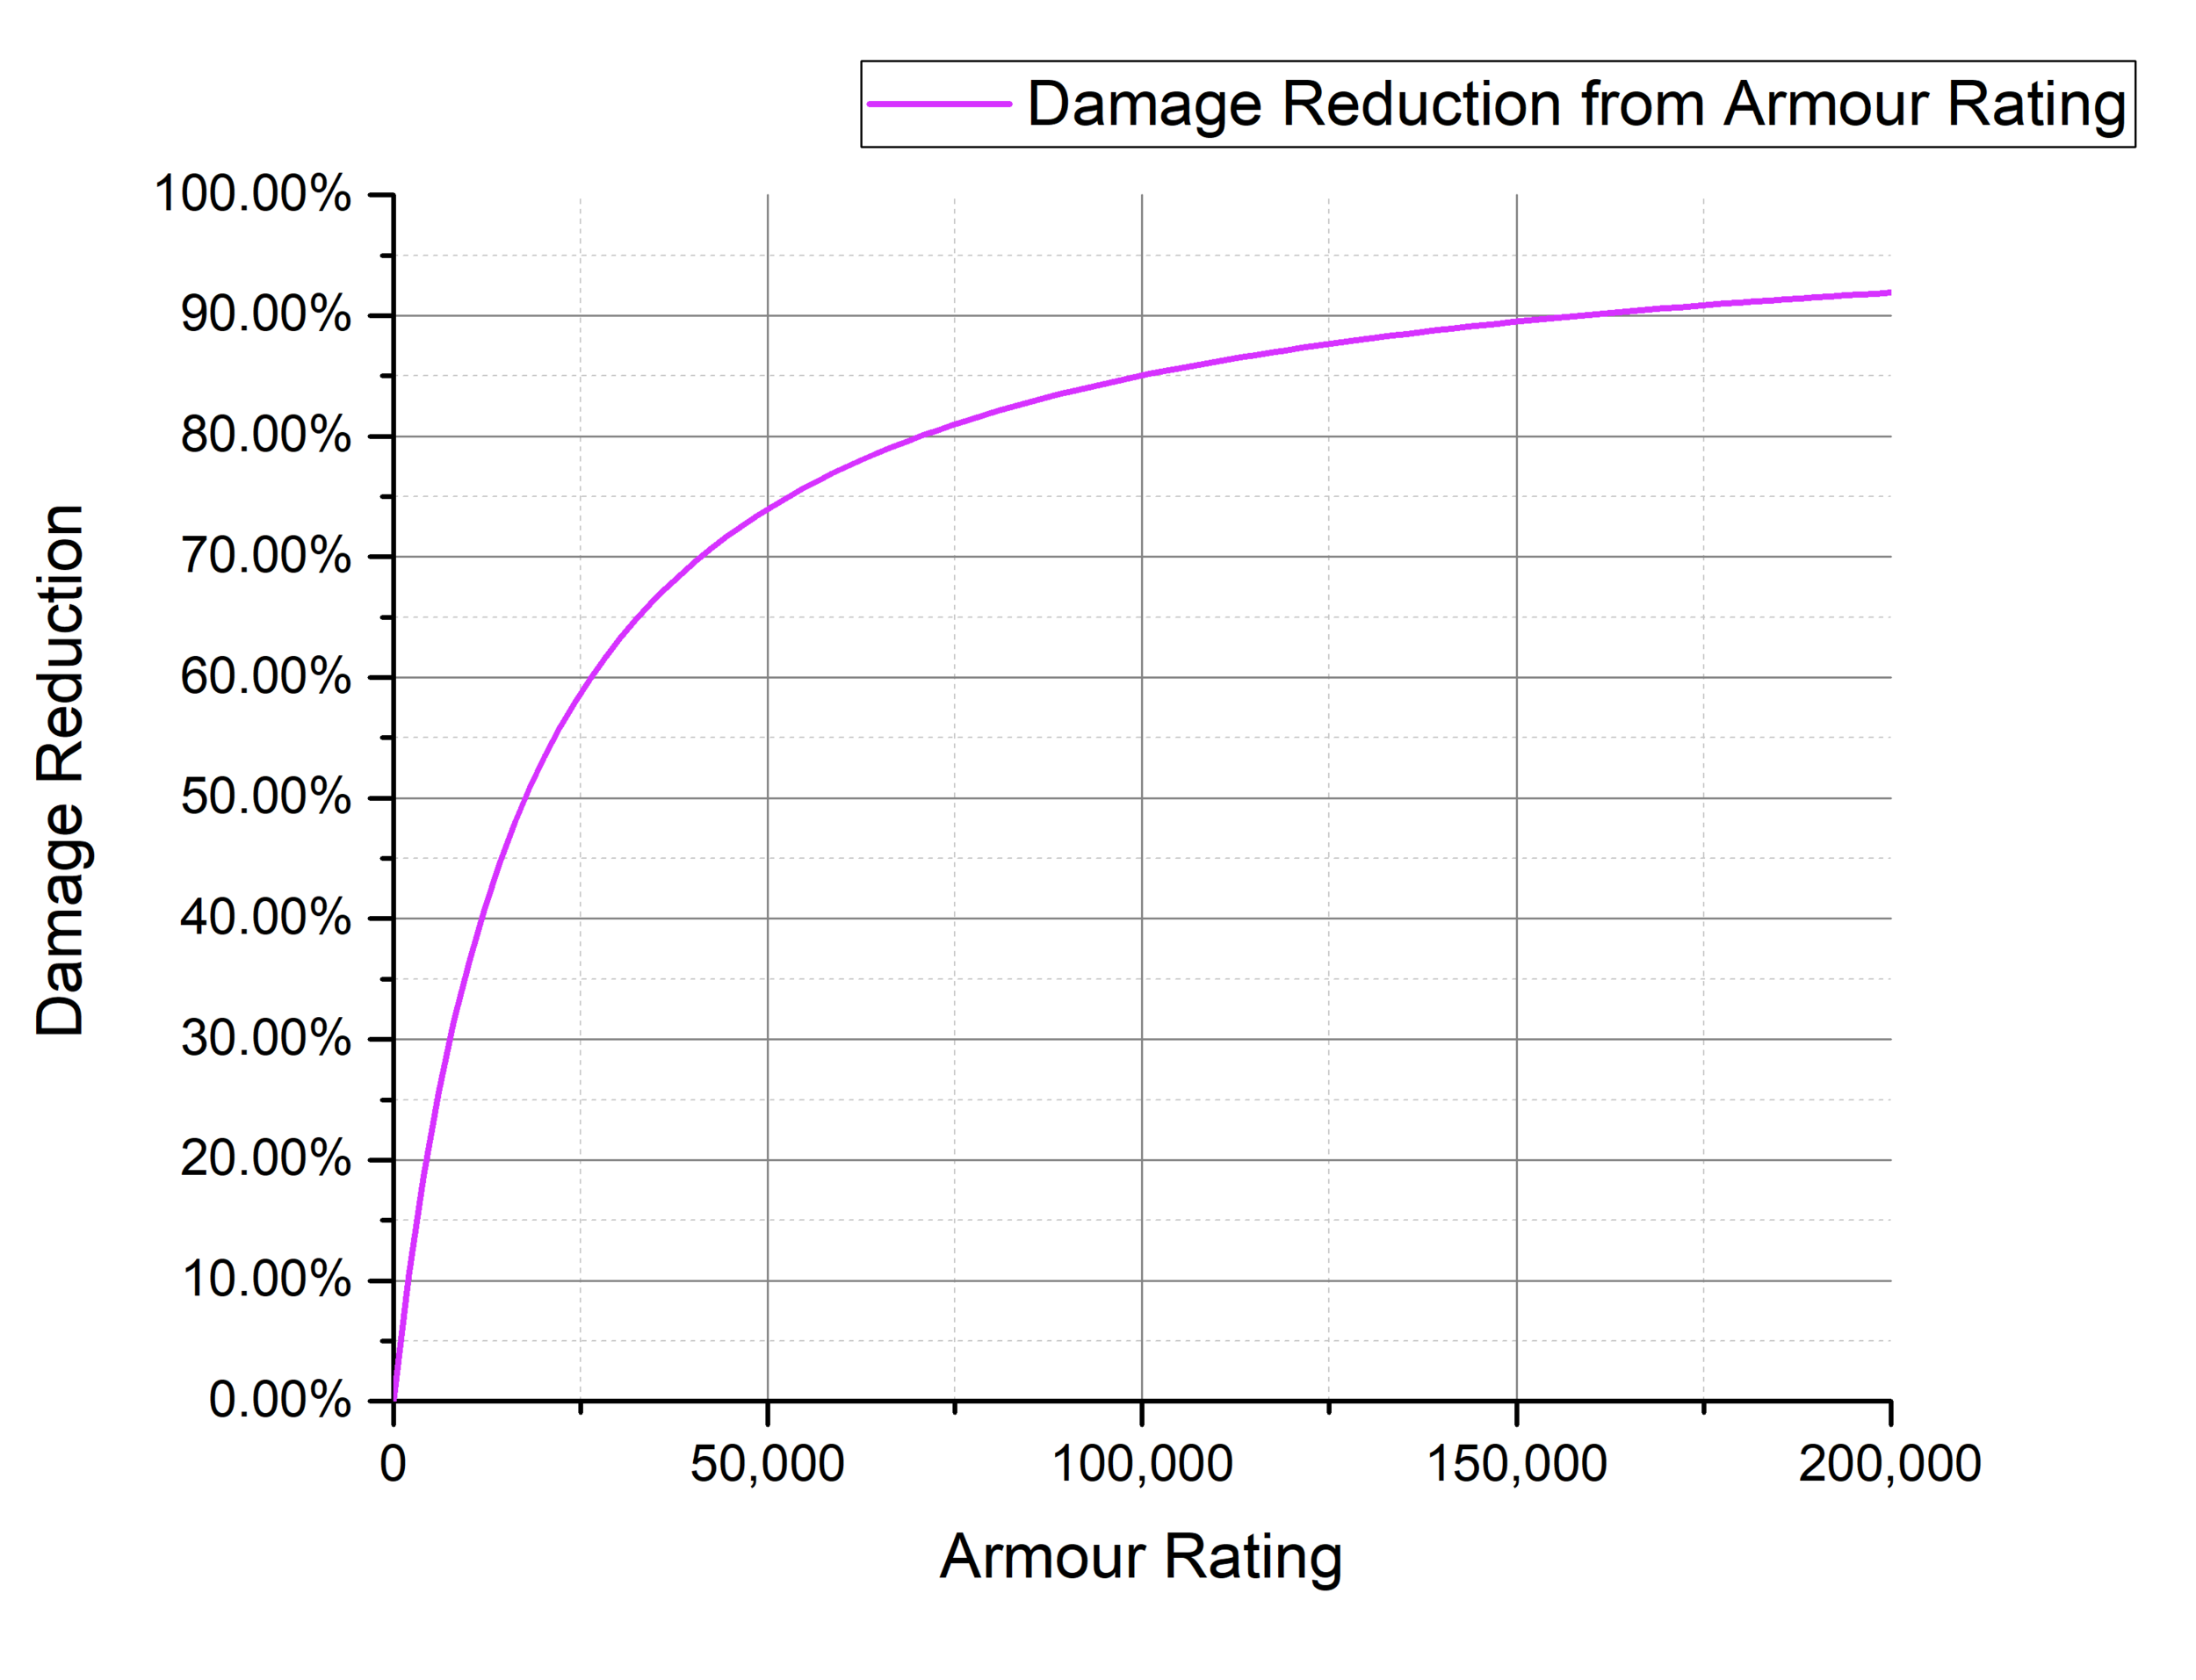 Fig. 14: Damage Reduction from Armour Rating (zoomed out).